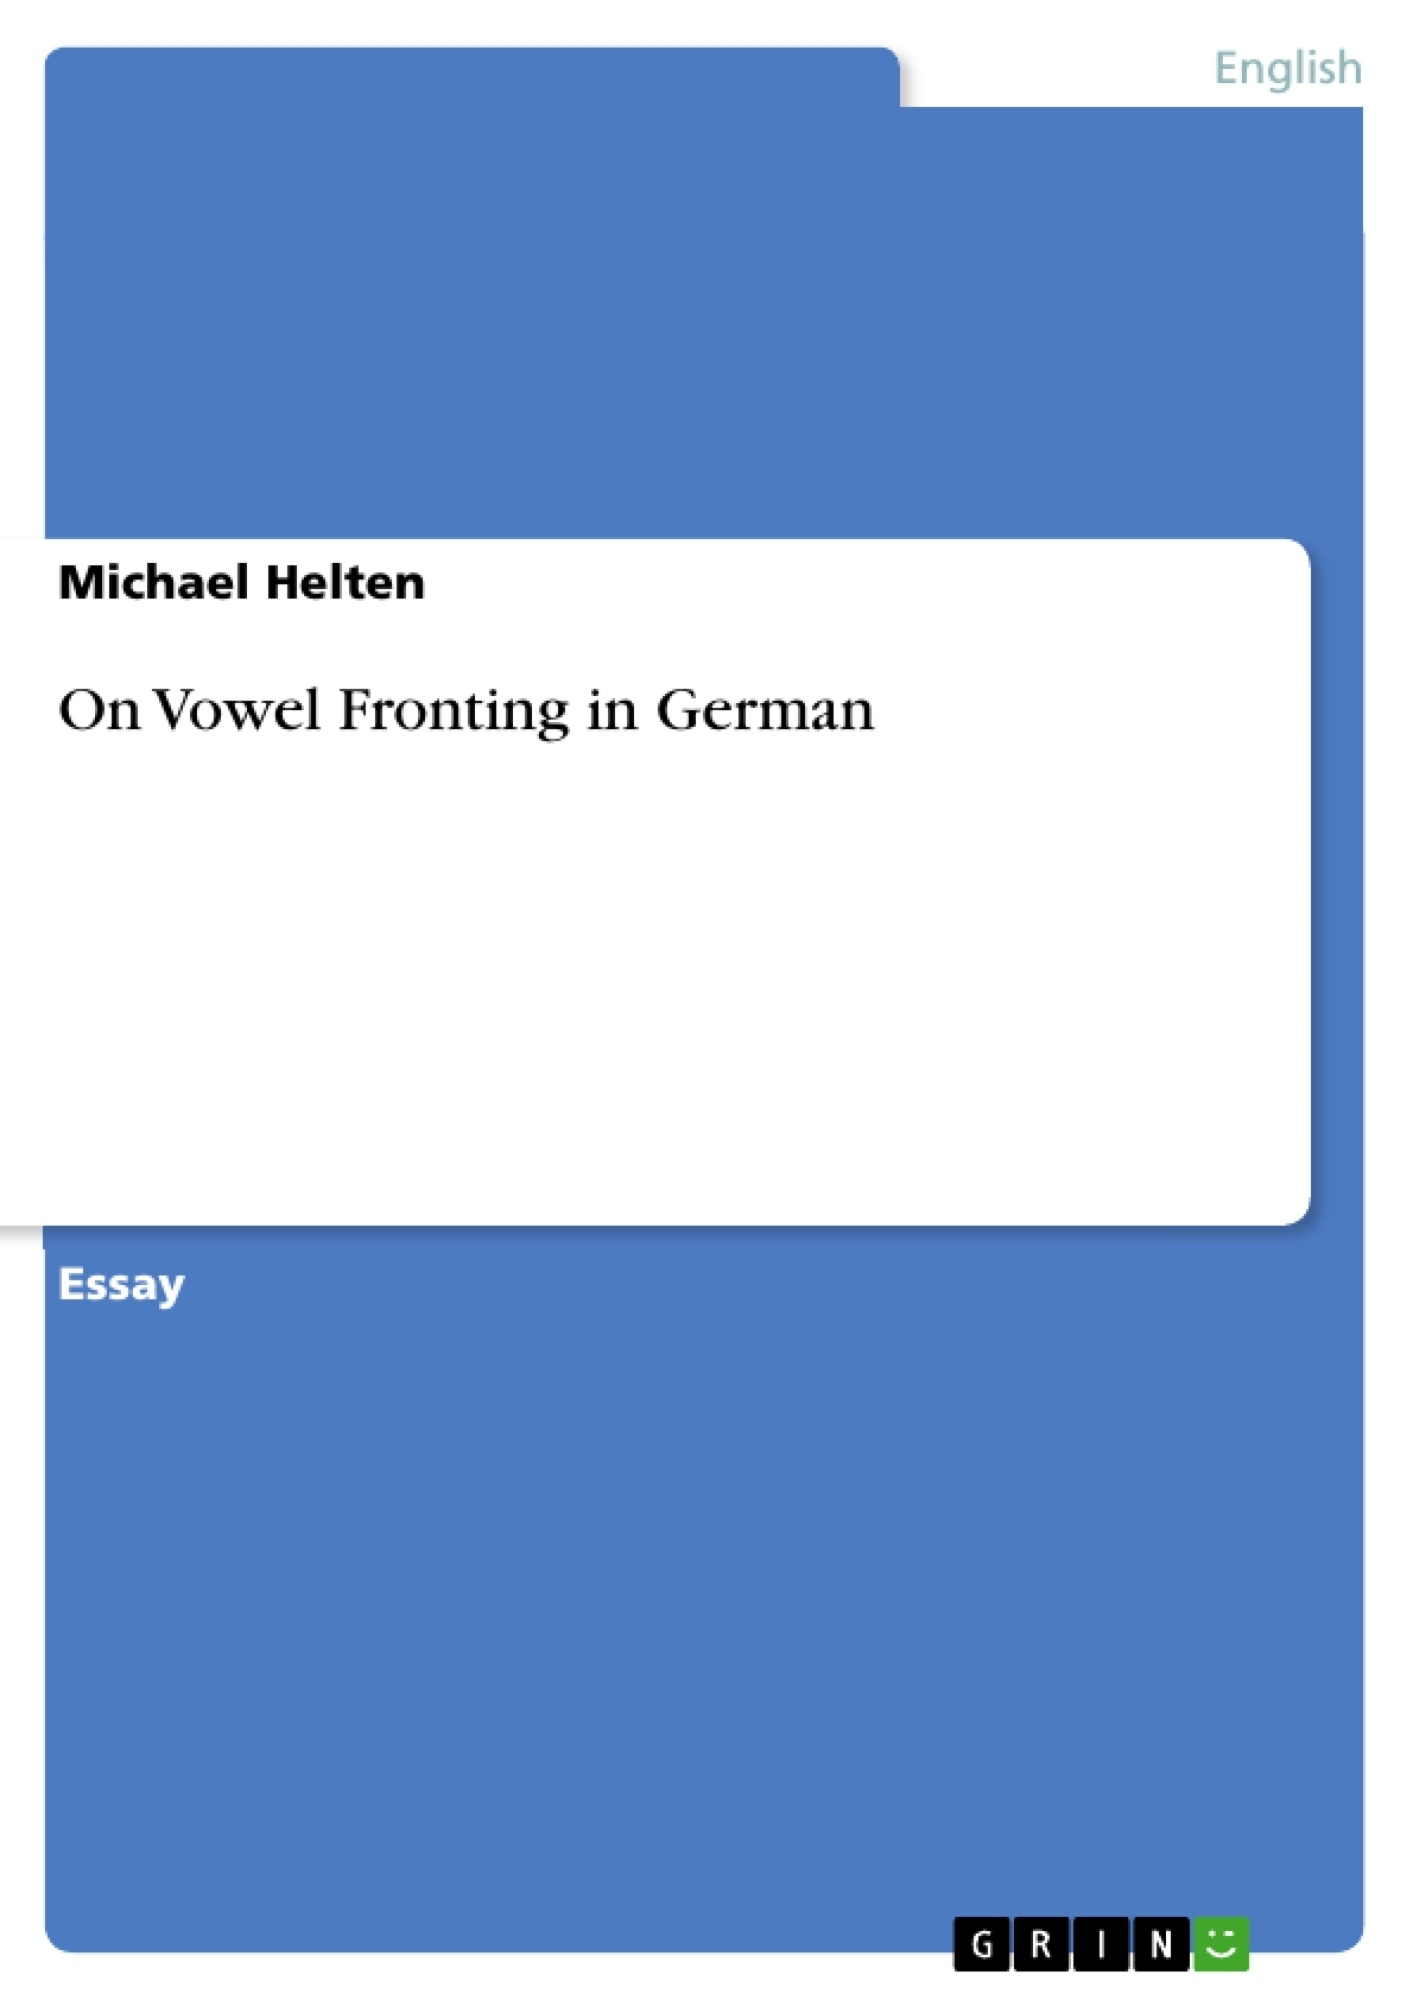 Title: On Vowel Fronting in German